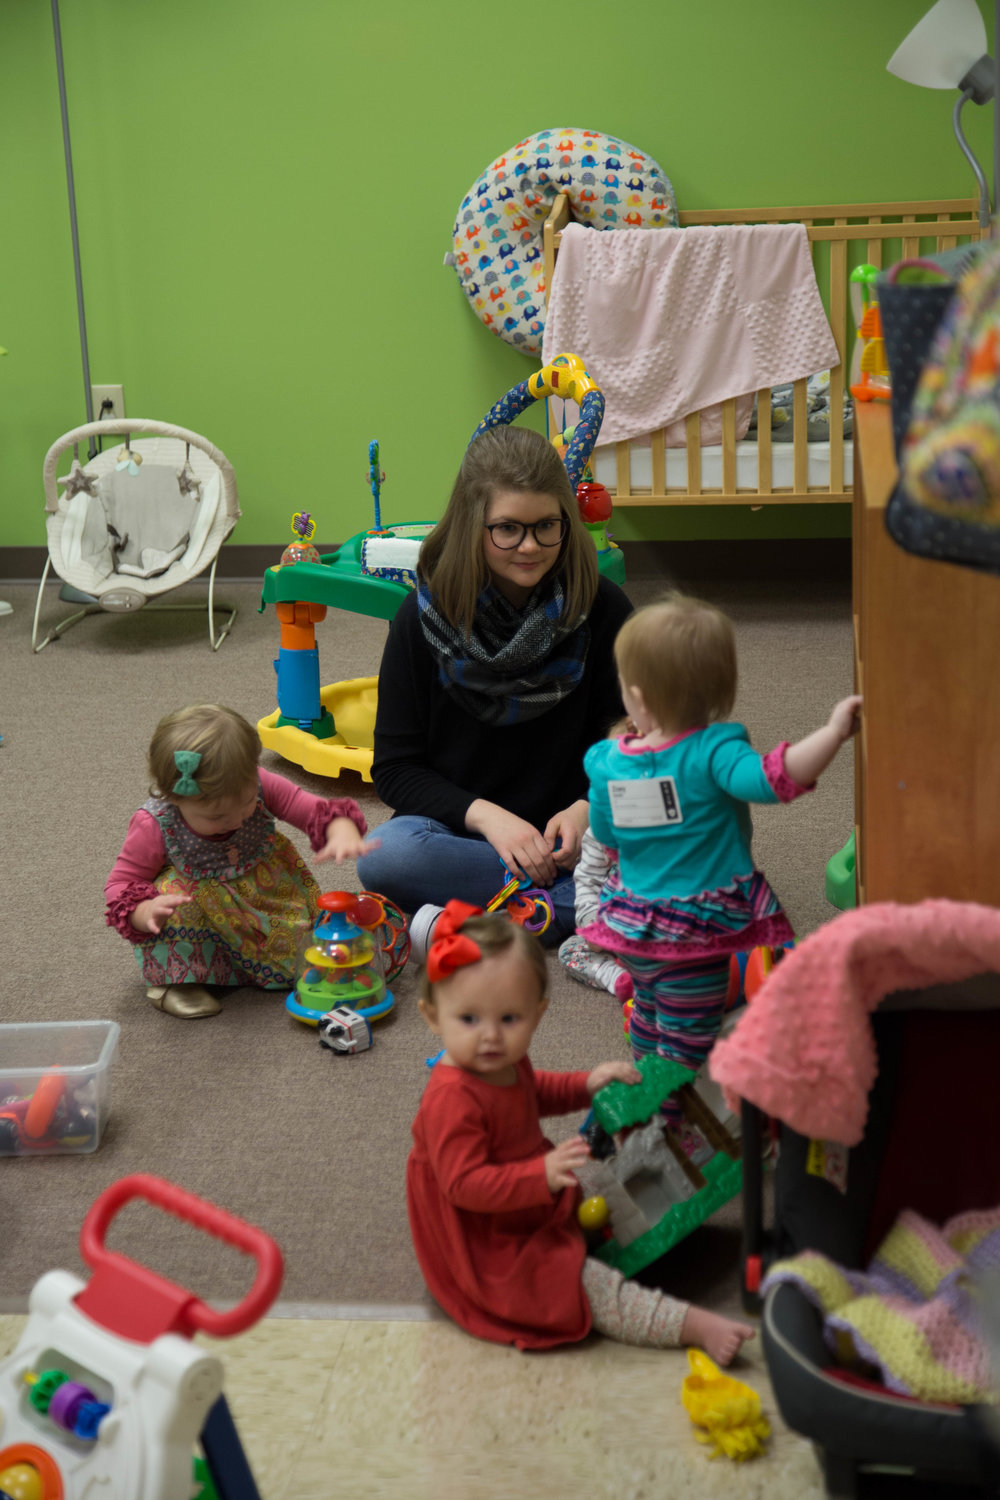 Nursery    Ages 6 weeks-23 months   Our nursery rooms are well staffed and prepared with age-appropriate toys that are thoroughly cleaned every week. As our team holds your baby, we pray for them to know God, find freedom, discover purpose, and make a difference throughout their life.